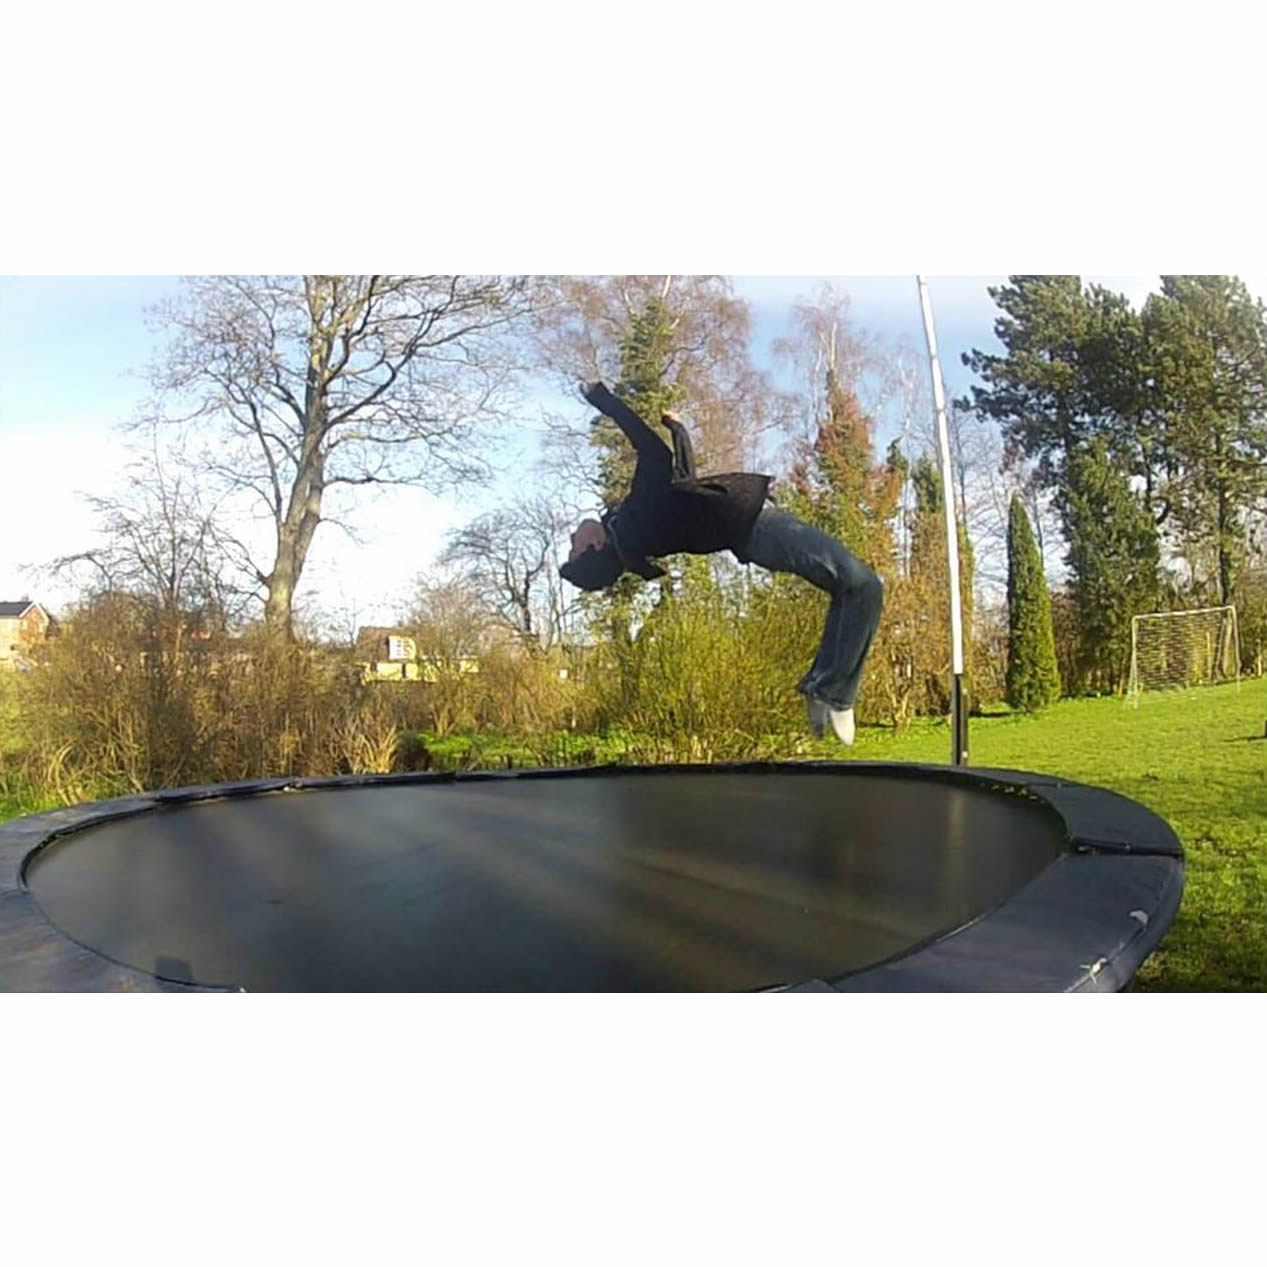 Cool Trampoline Tricks That Will Impress Your Friends